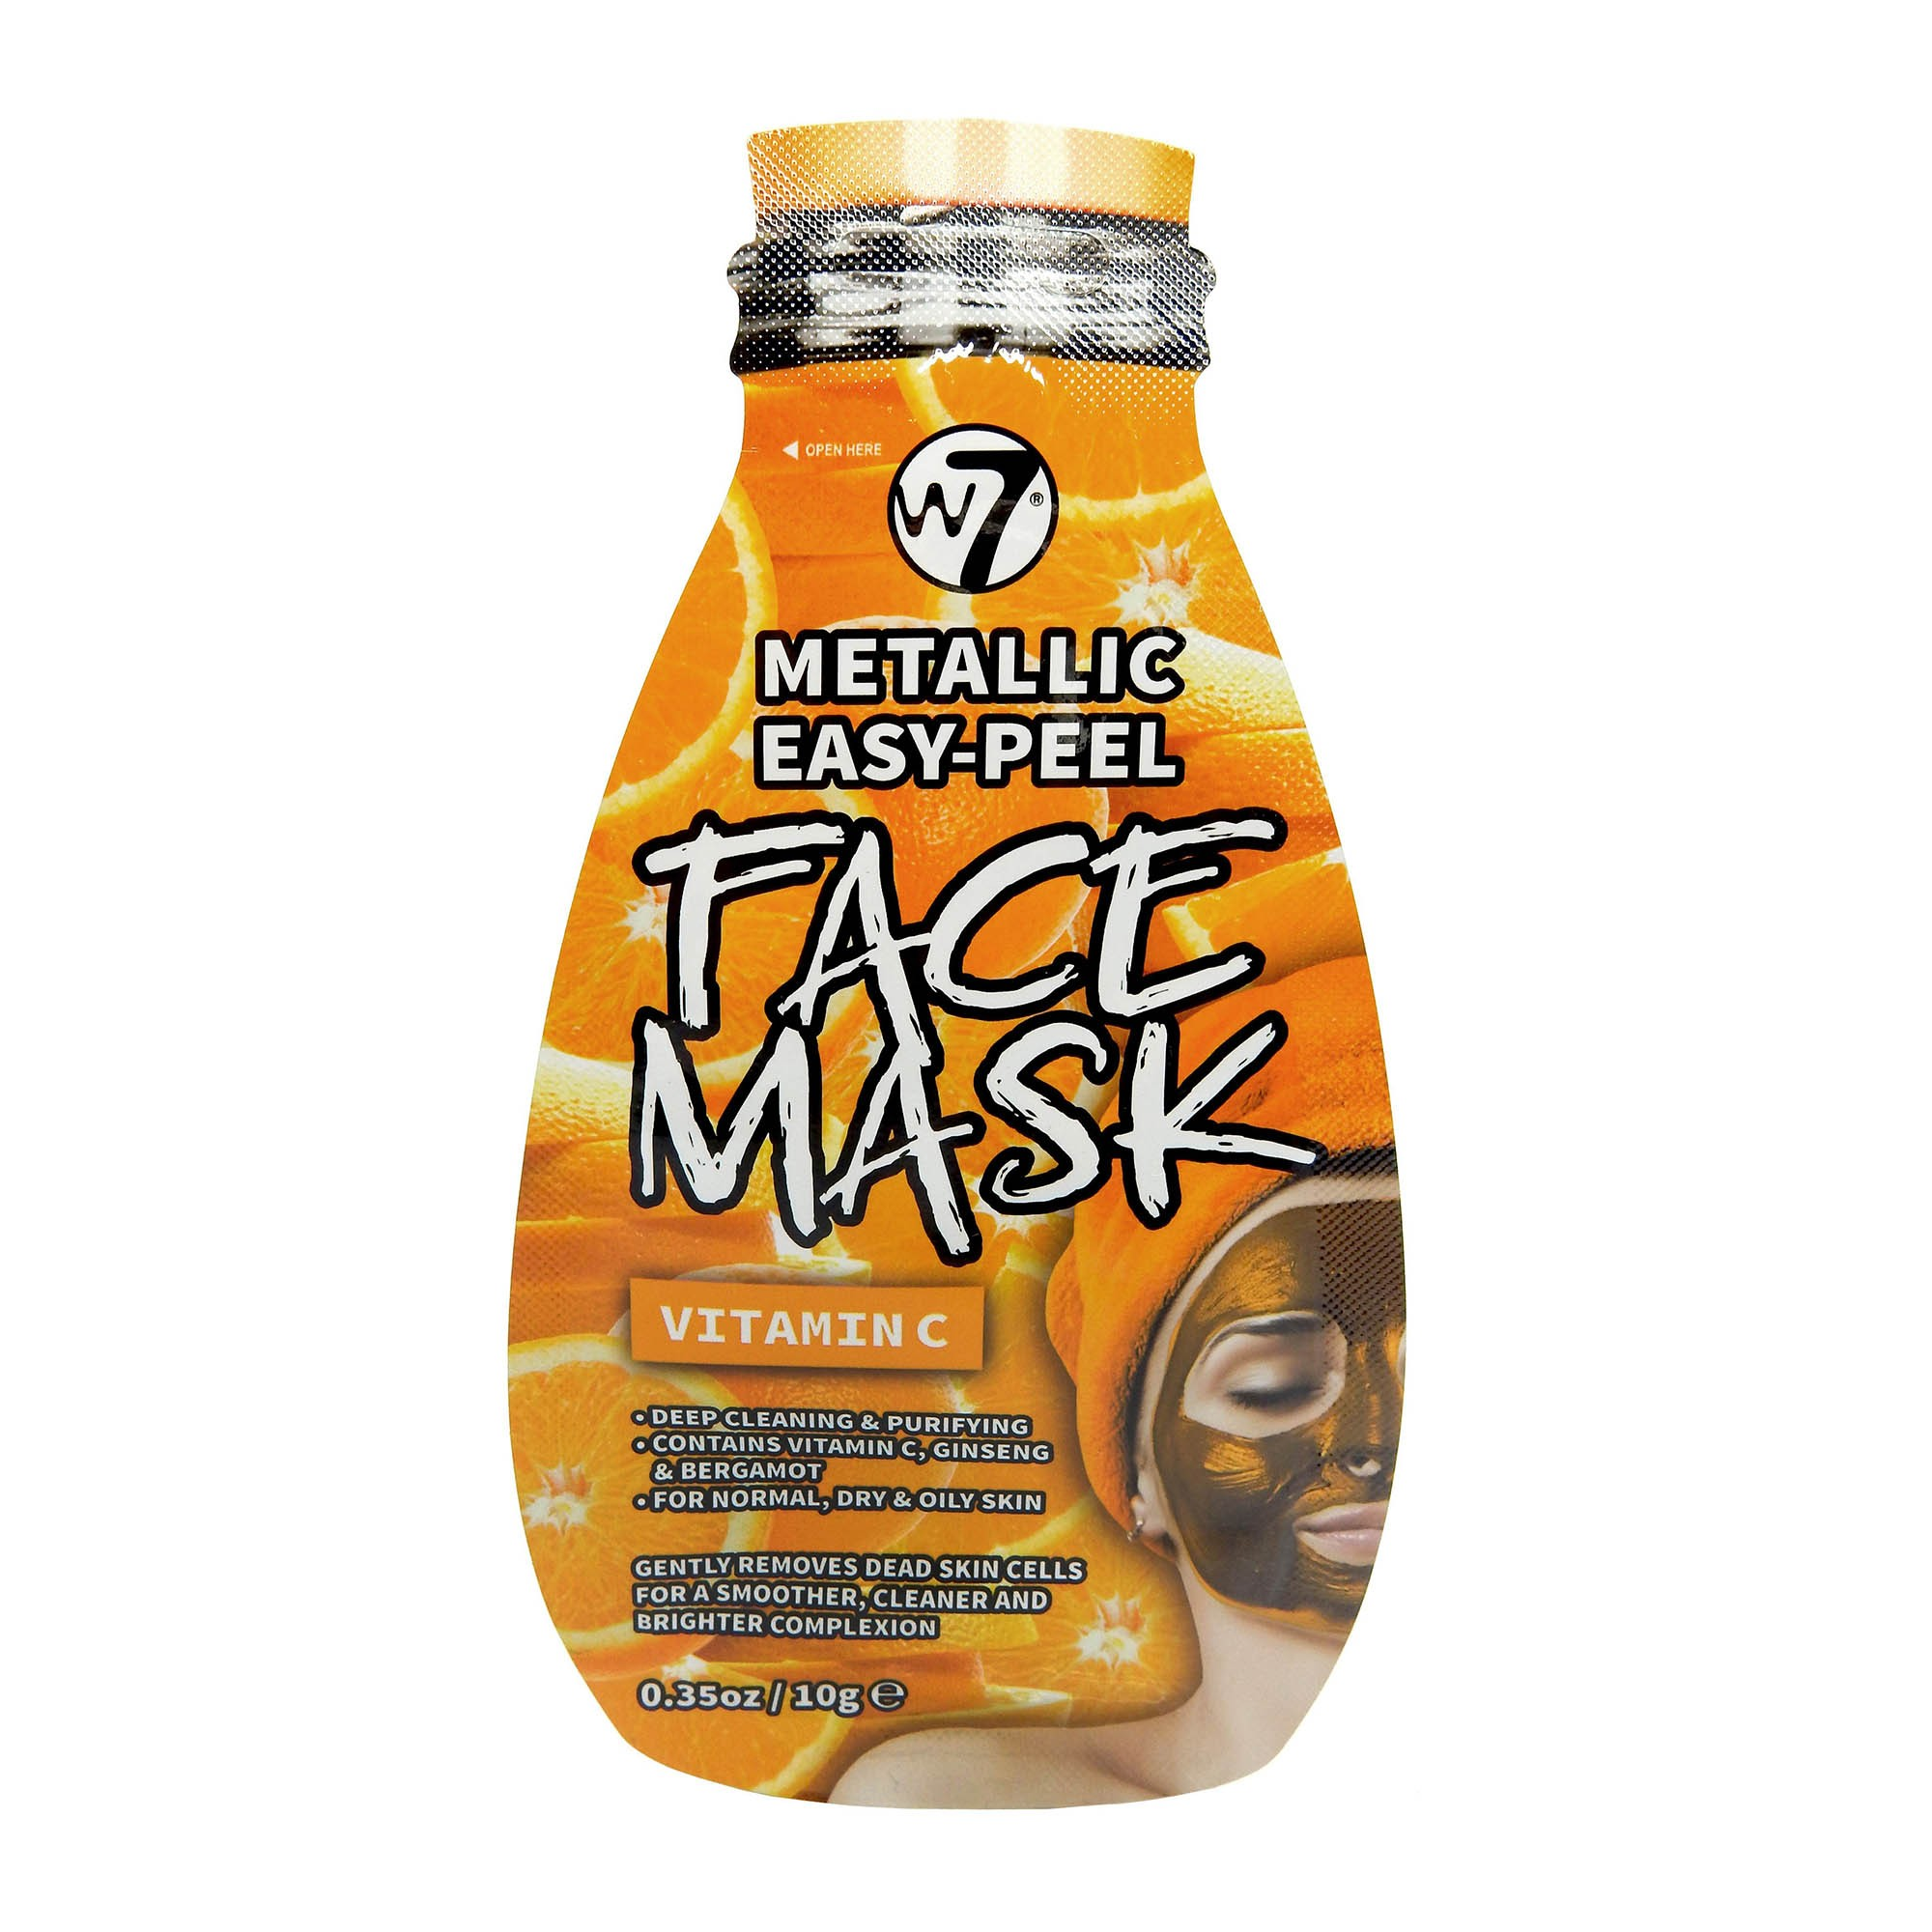 Peel-Off Gesichtsmaske - Metallic Easy-Peel Vitamin C Face Mask